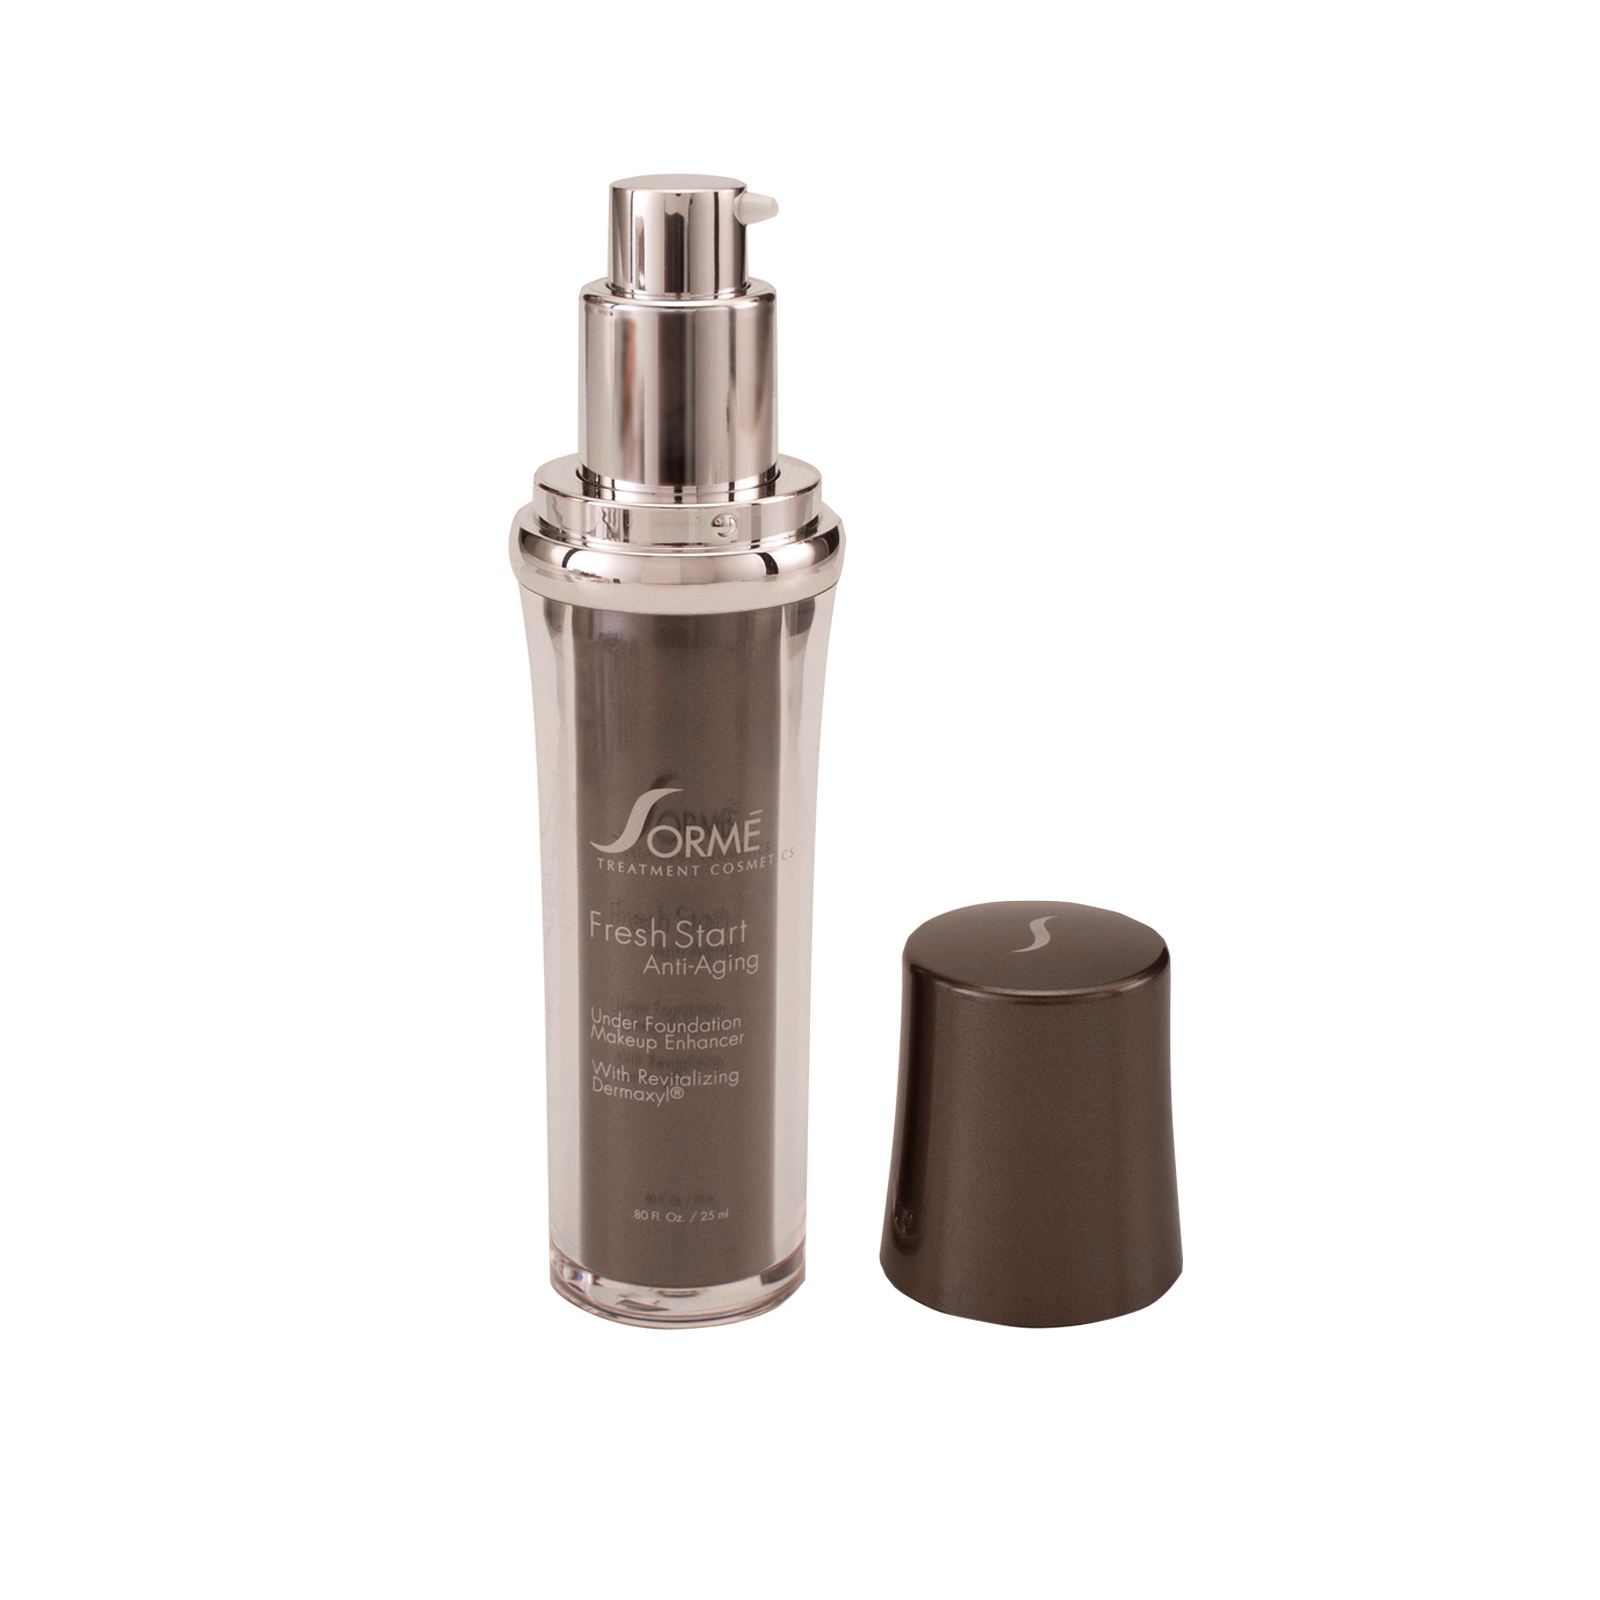 Fresh Start Anti-Aging Primer